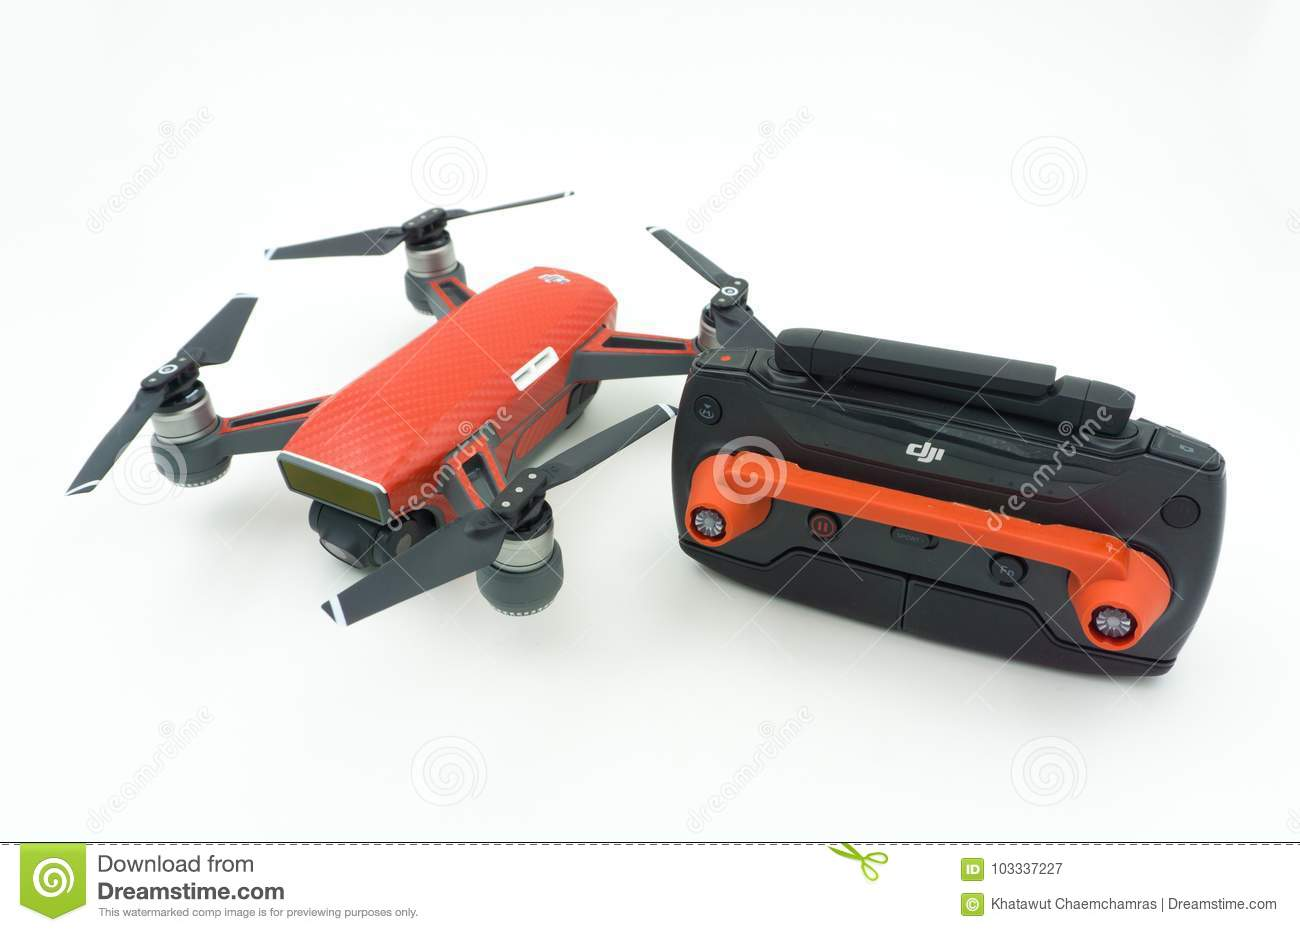 Dji Spark Drone Start Sell In Thailand Is A Mini Fr Sky Blue